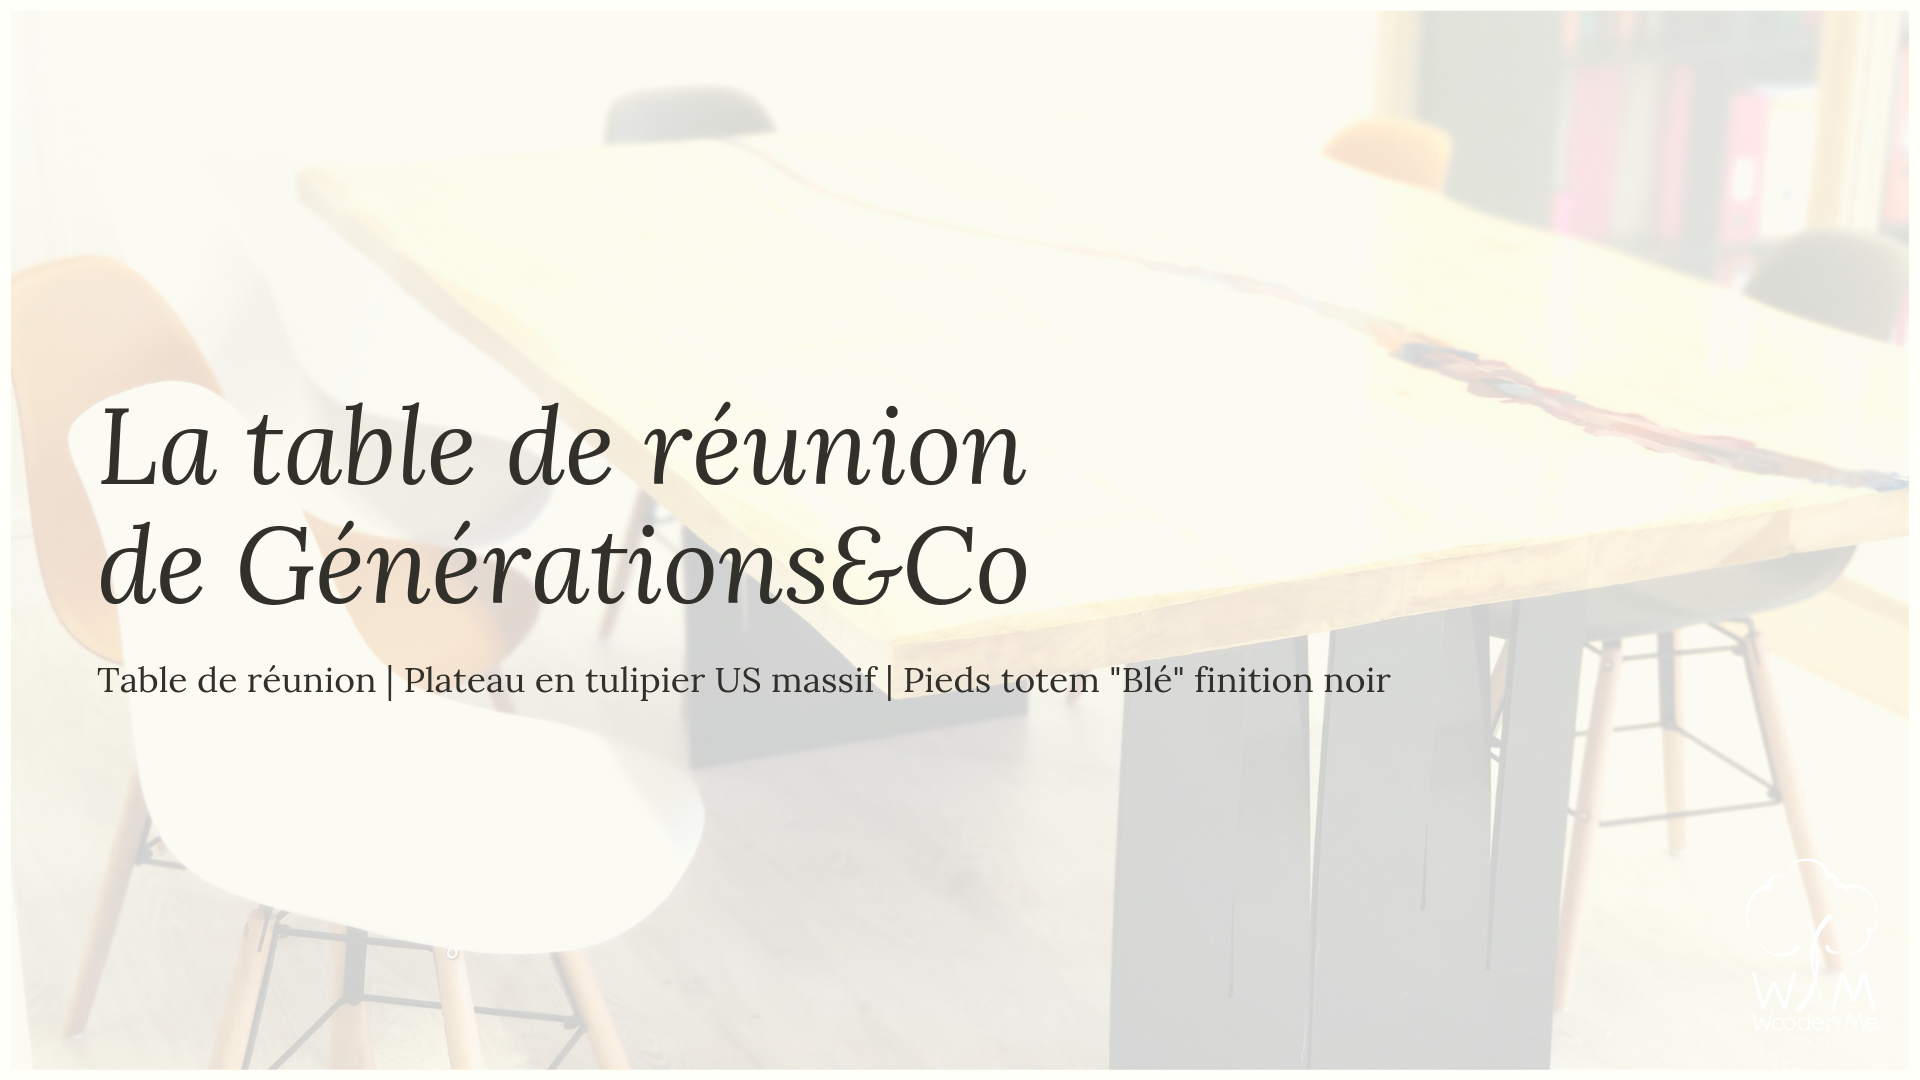 La table de réunion de G&Co